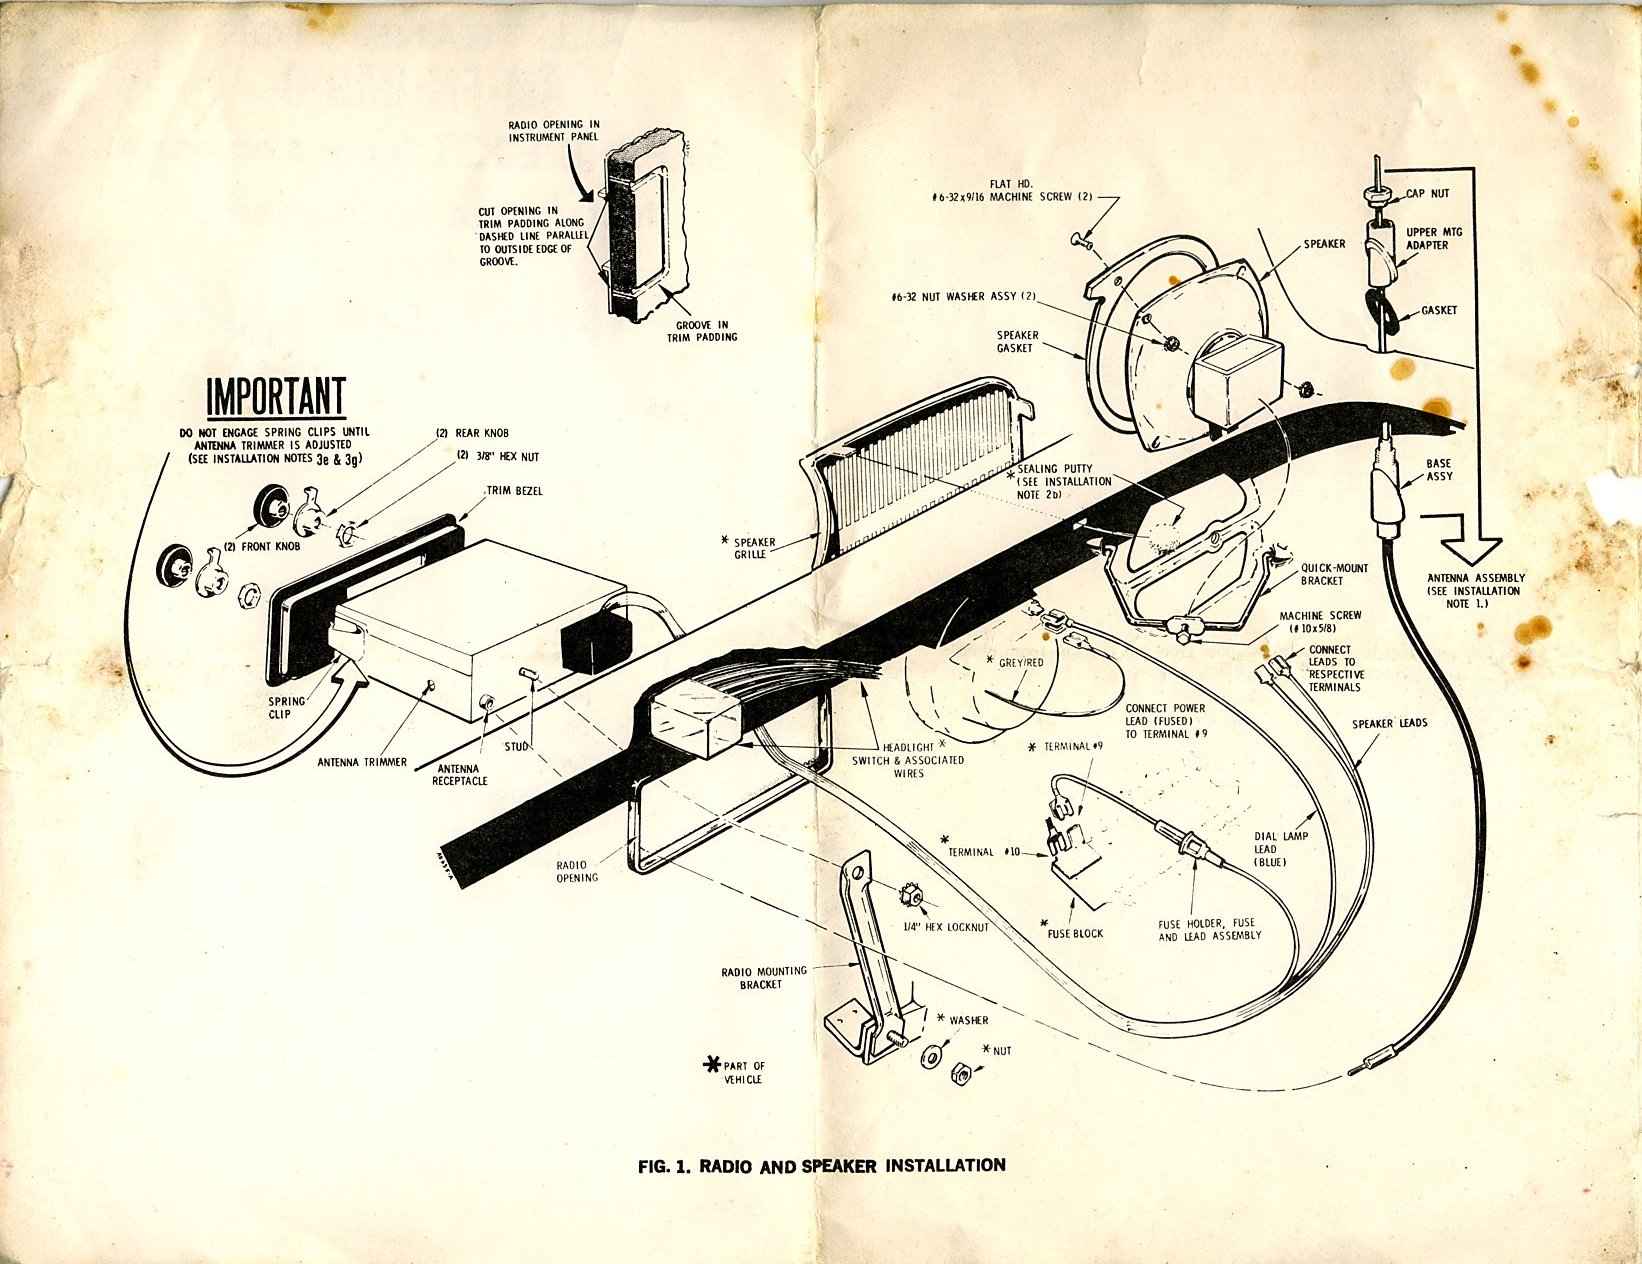 1970 beetle wiring diagram stihl ms 441 parts 71 vw radio get free image about